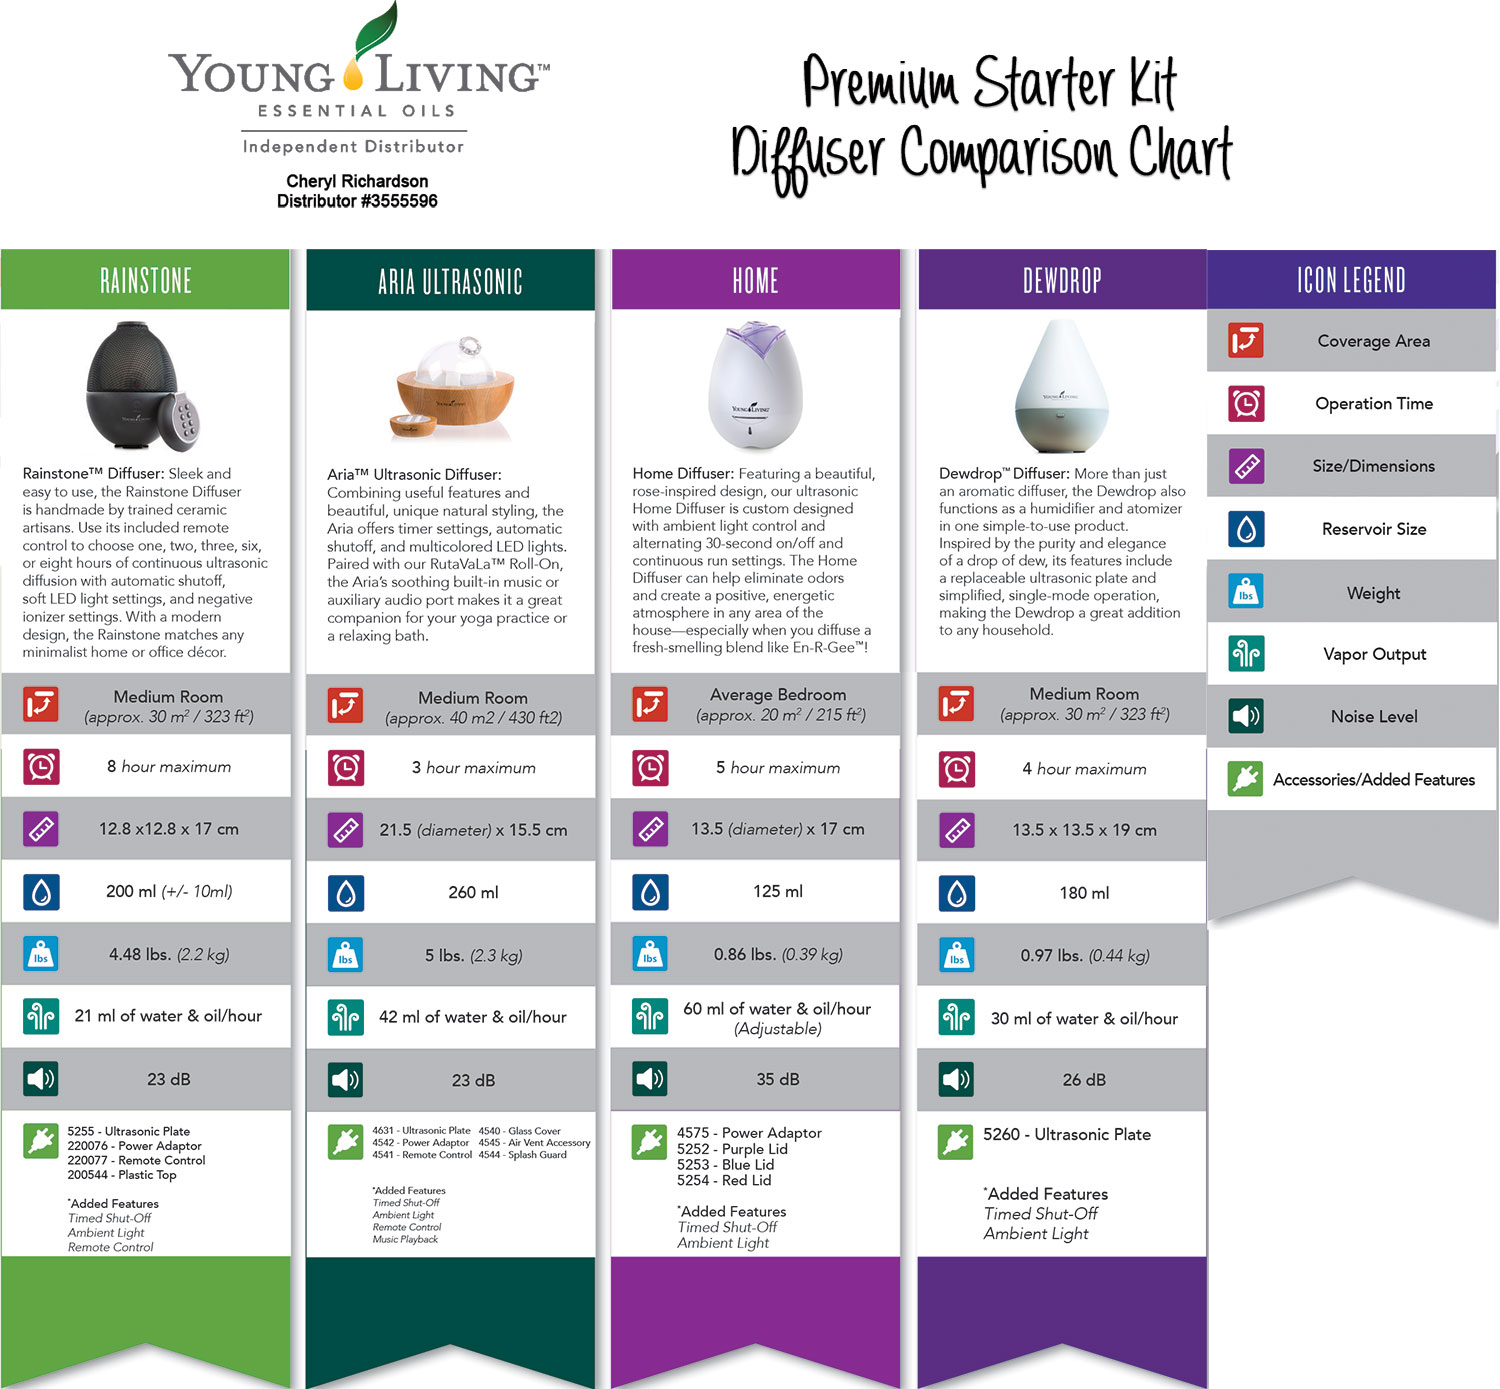 Young Living Premium Starter Kit Diffuser Comparison Chart